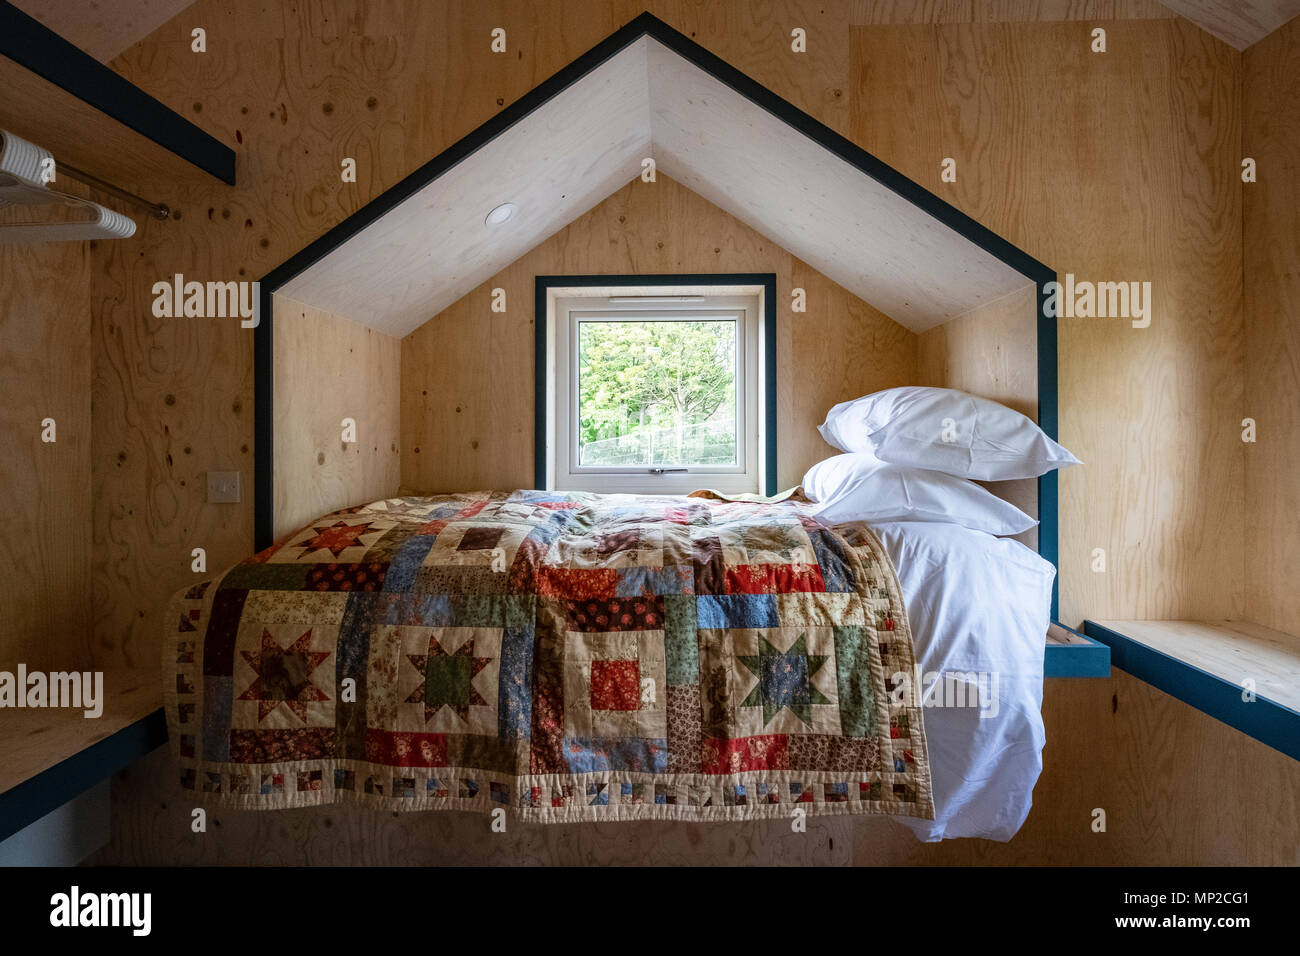 View of bedroom at the Social Bite Village in Granton built by Social Bite organisation for homeless people, Edinburgh, Scotland, United Kin - Stock Image